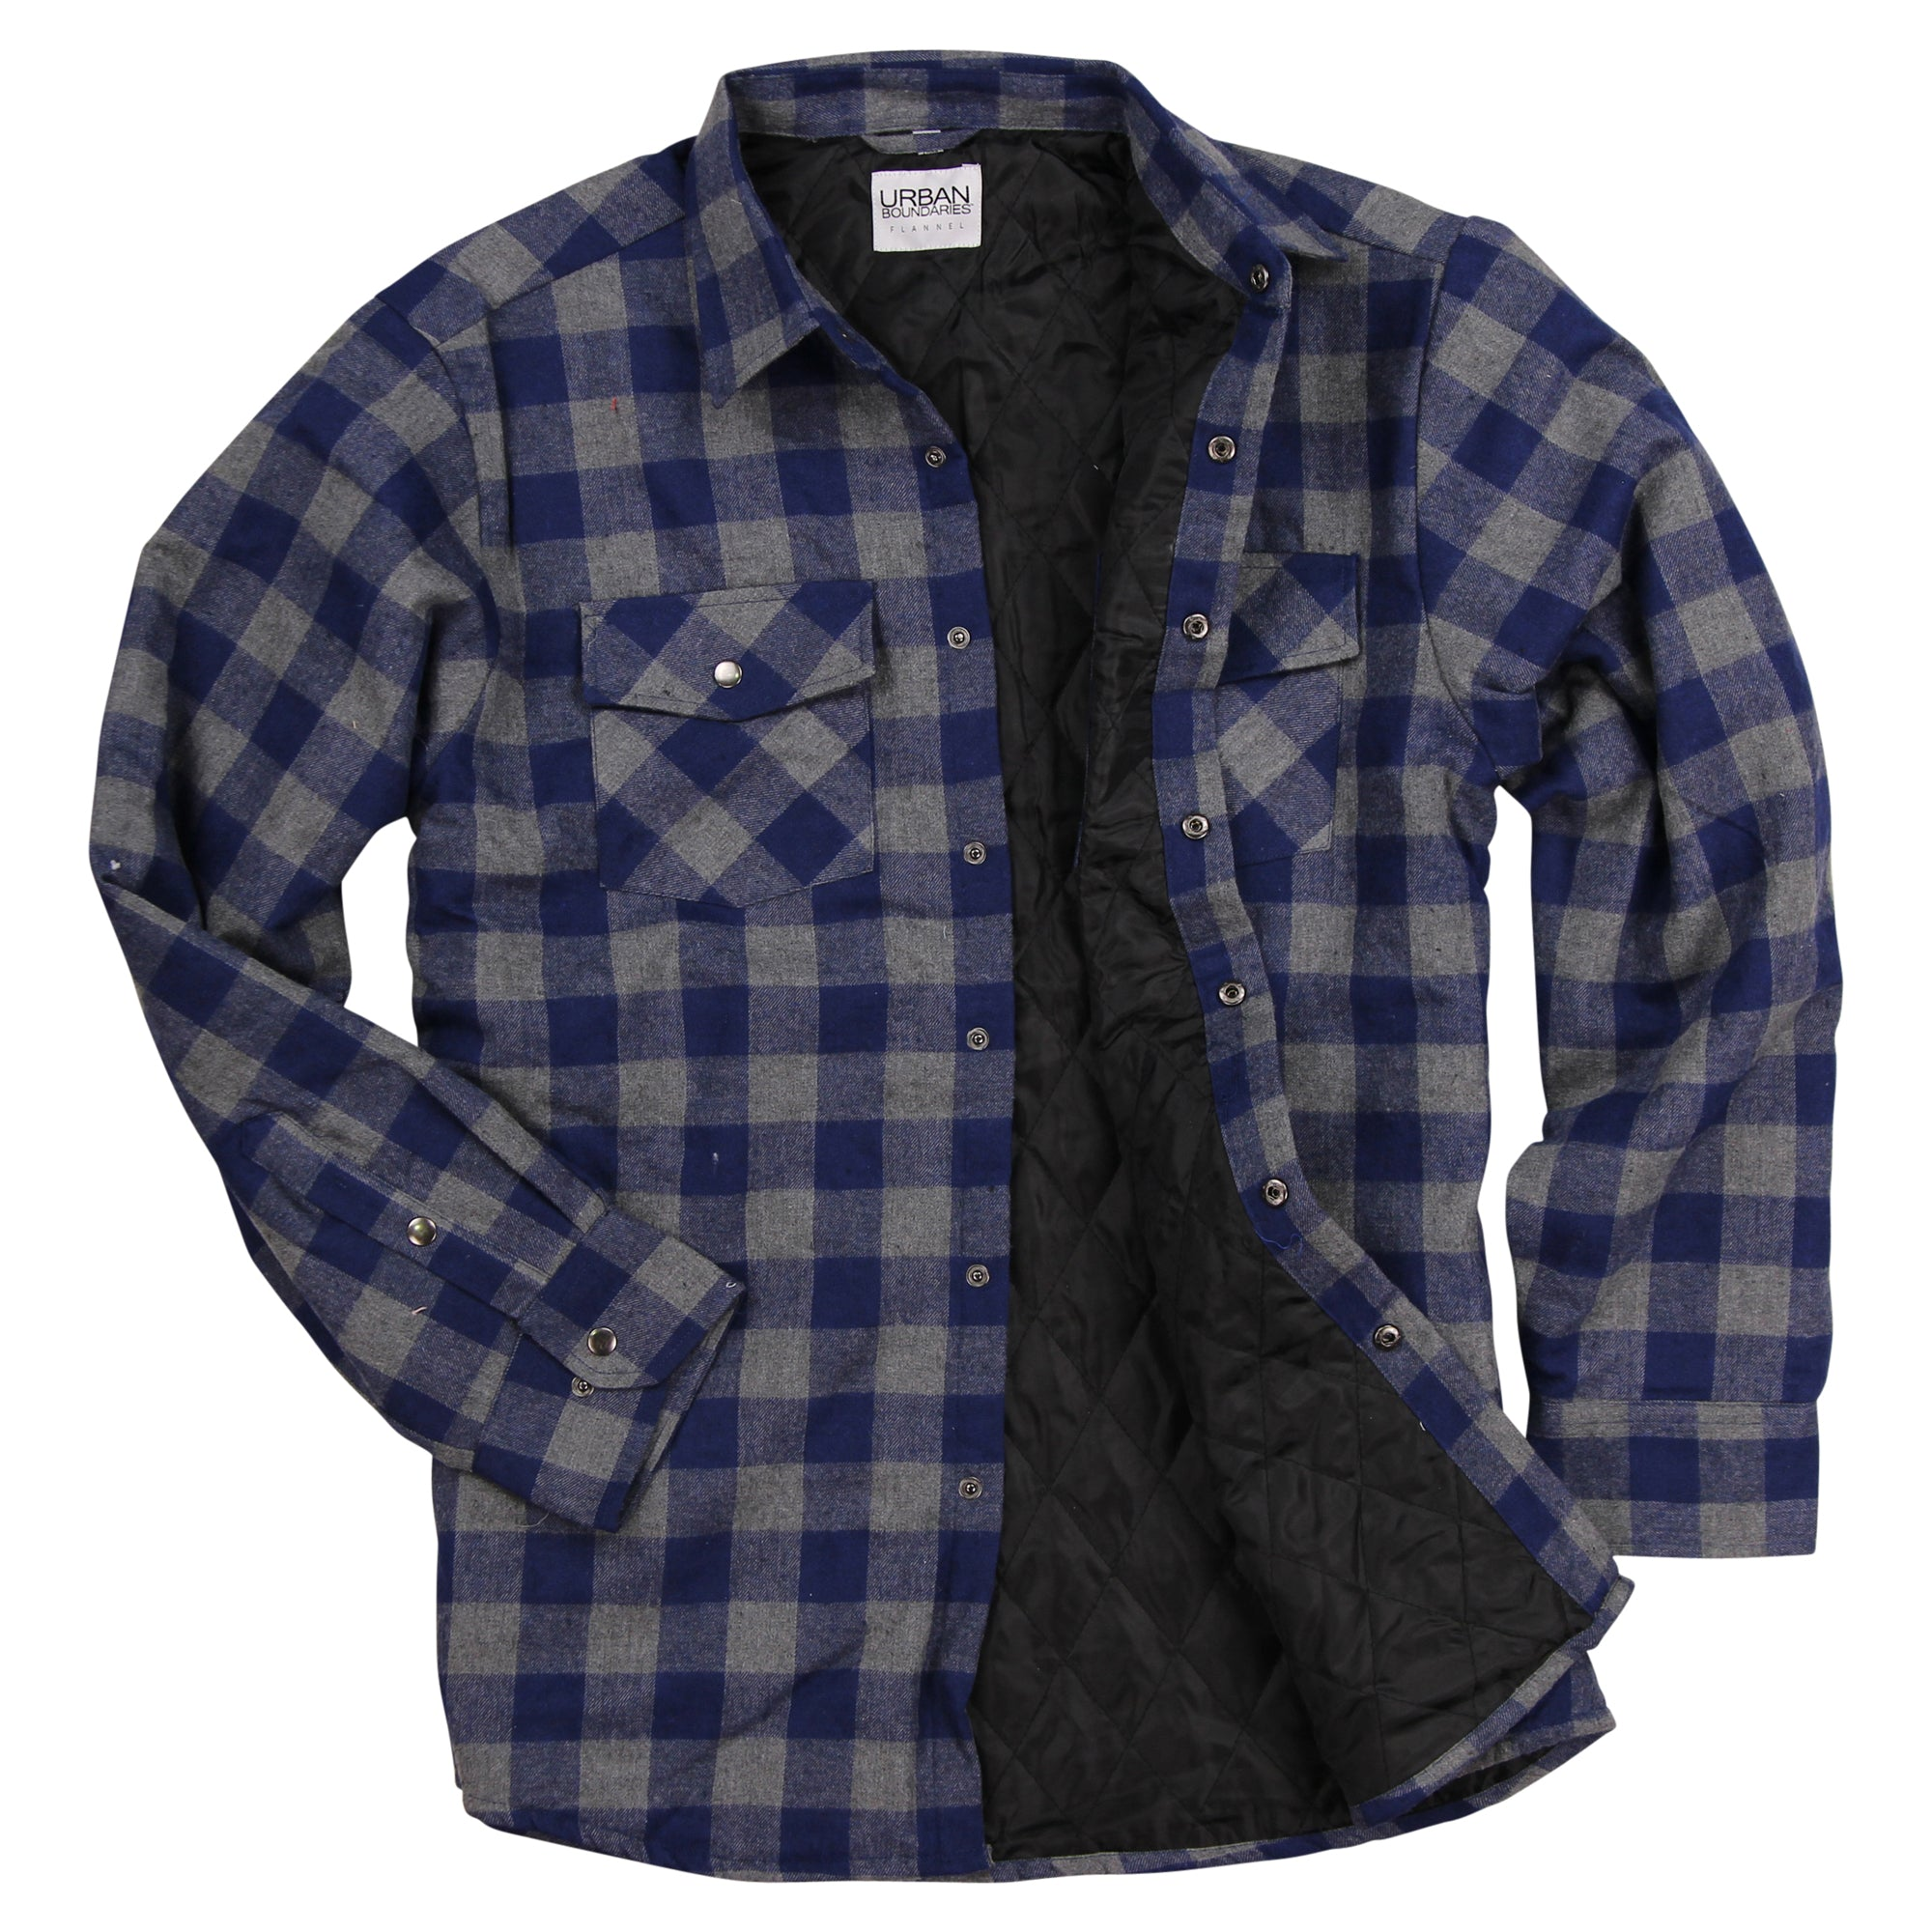 Ely Cattleman Men/'s Plaid Quilted Flannel Jacket Shirt 15201421 /& 15201422